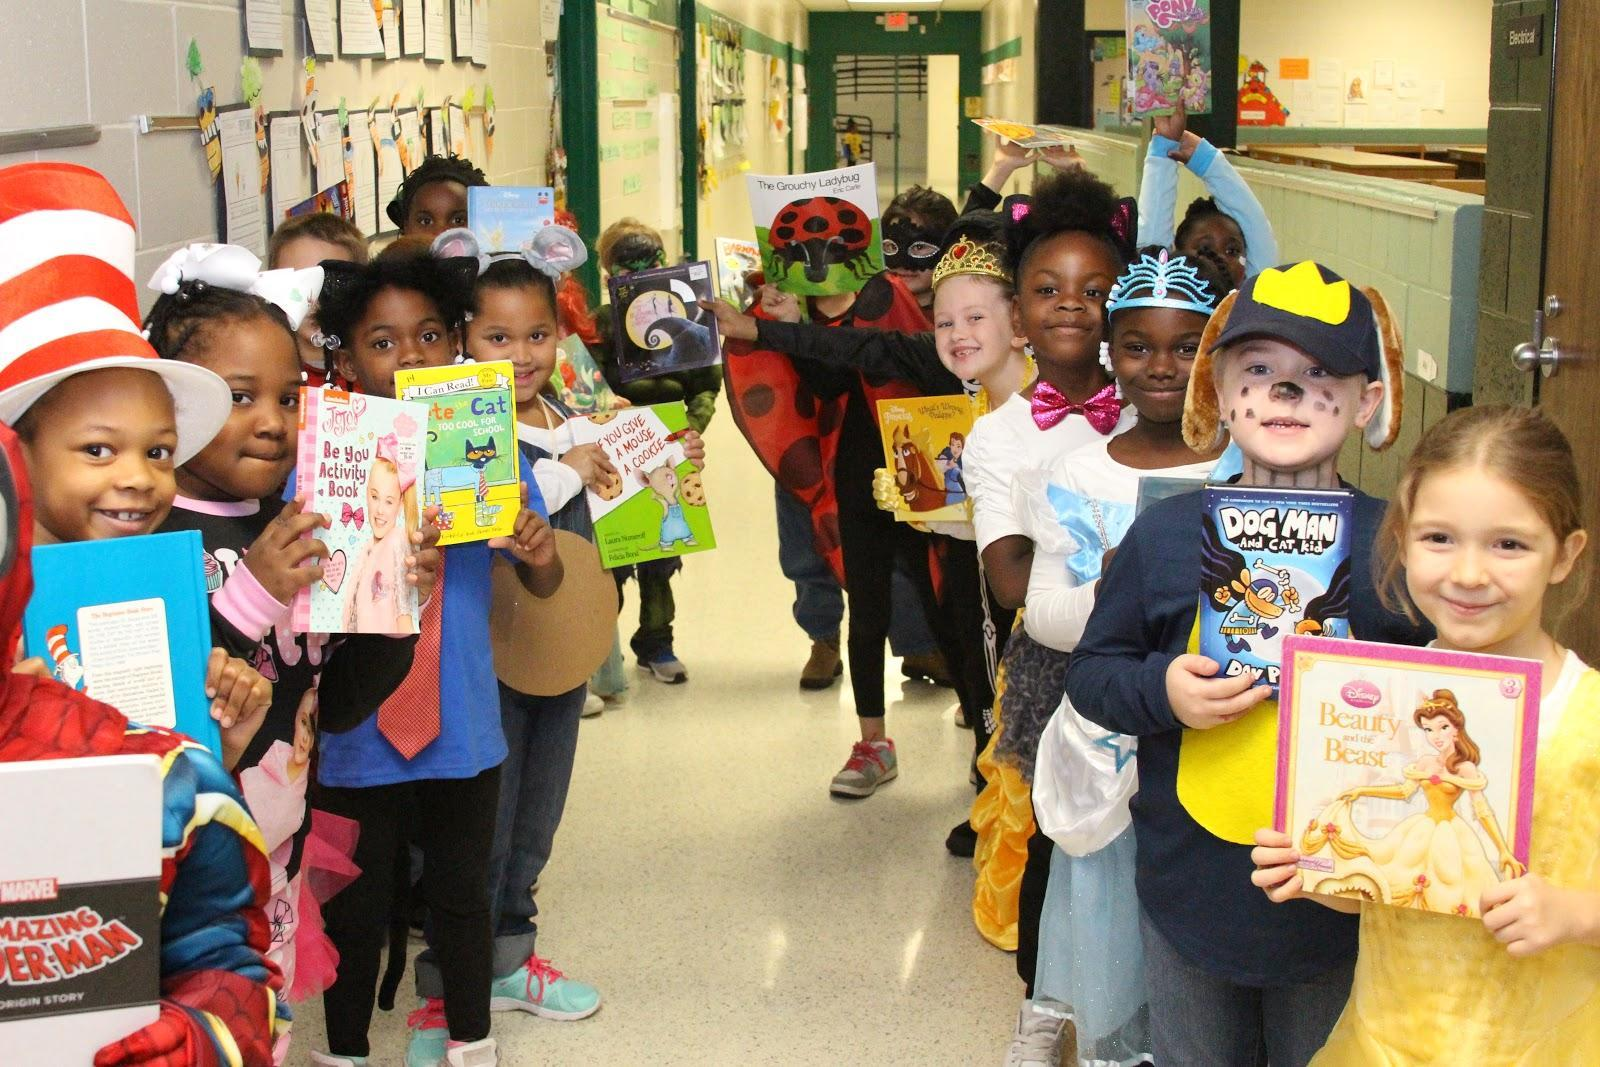 BLPS Students in character at book parade